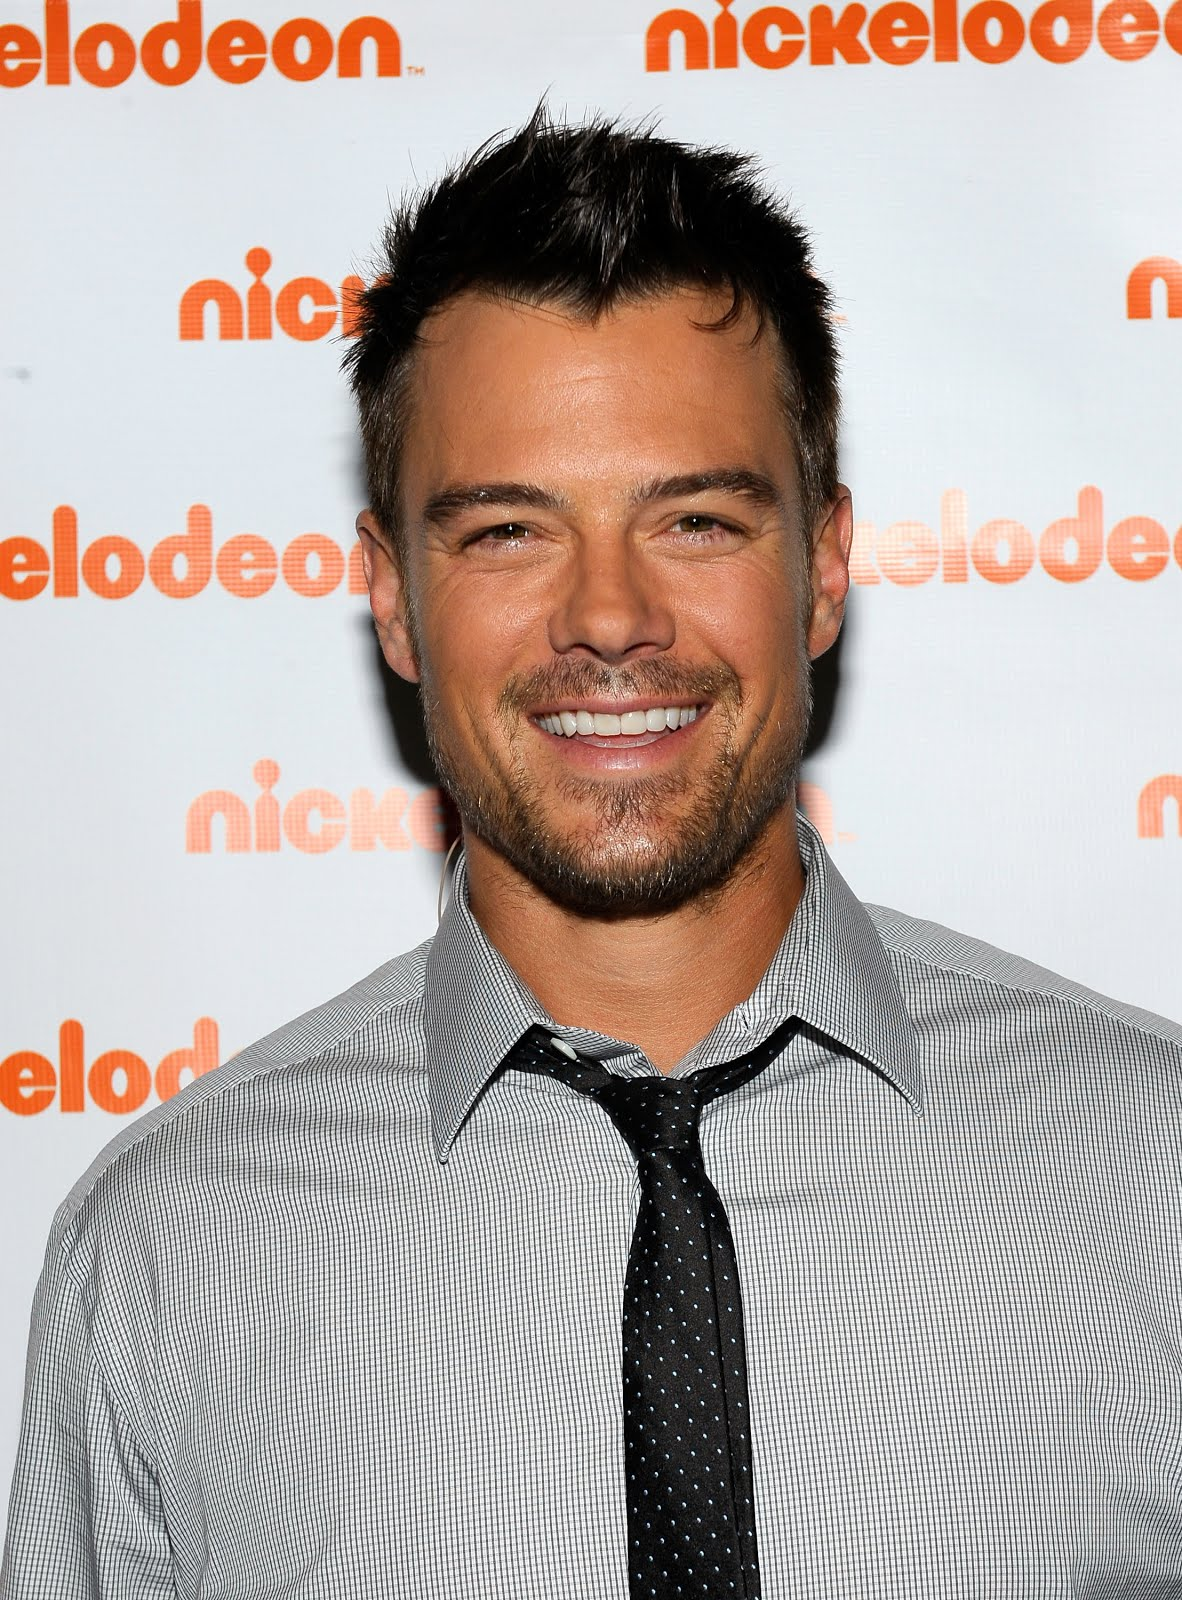 http://1.bp.blogspot.com/-QohNRmNh3J8/UQA3j1OLR8I/AAAAAAAAQqc/BxmuaWogmdA/s1600/kca2013-joshduhamel-Nickelodeons-26th-Annual-Kids-Choice-Awards-Nickelodeon-2013-Actor-Josh-Duhamel-Host-Presenter-Press-Photograph-Picture_2.jpg